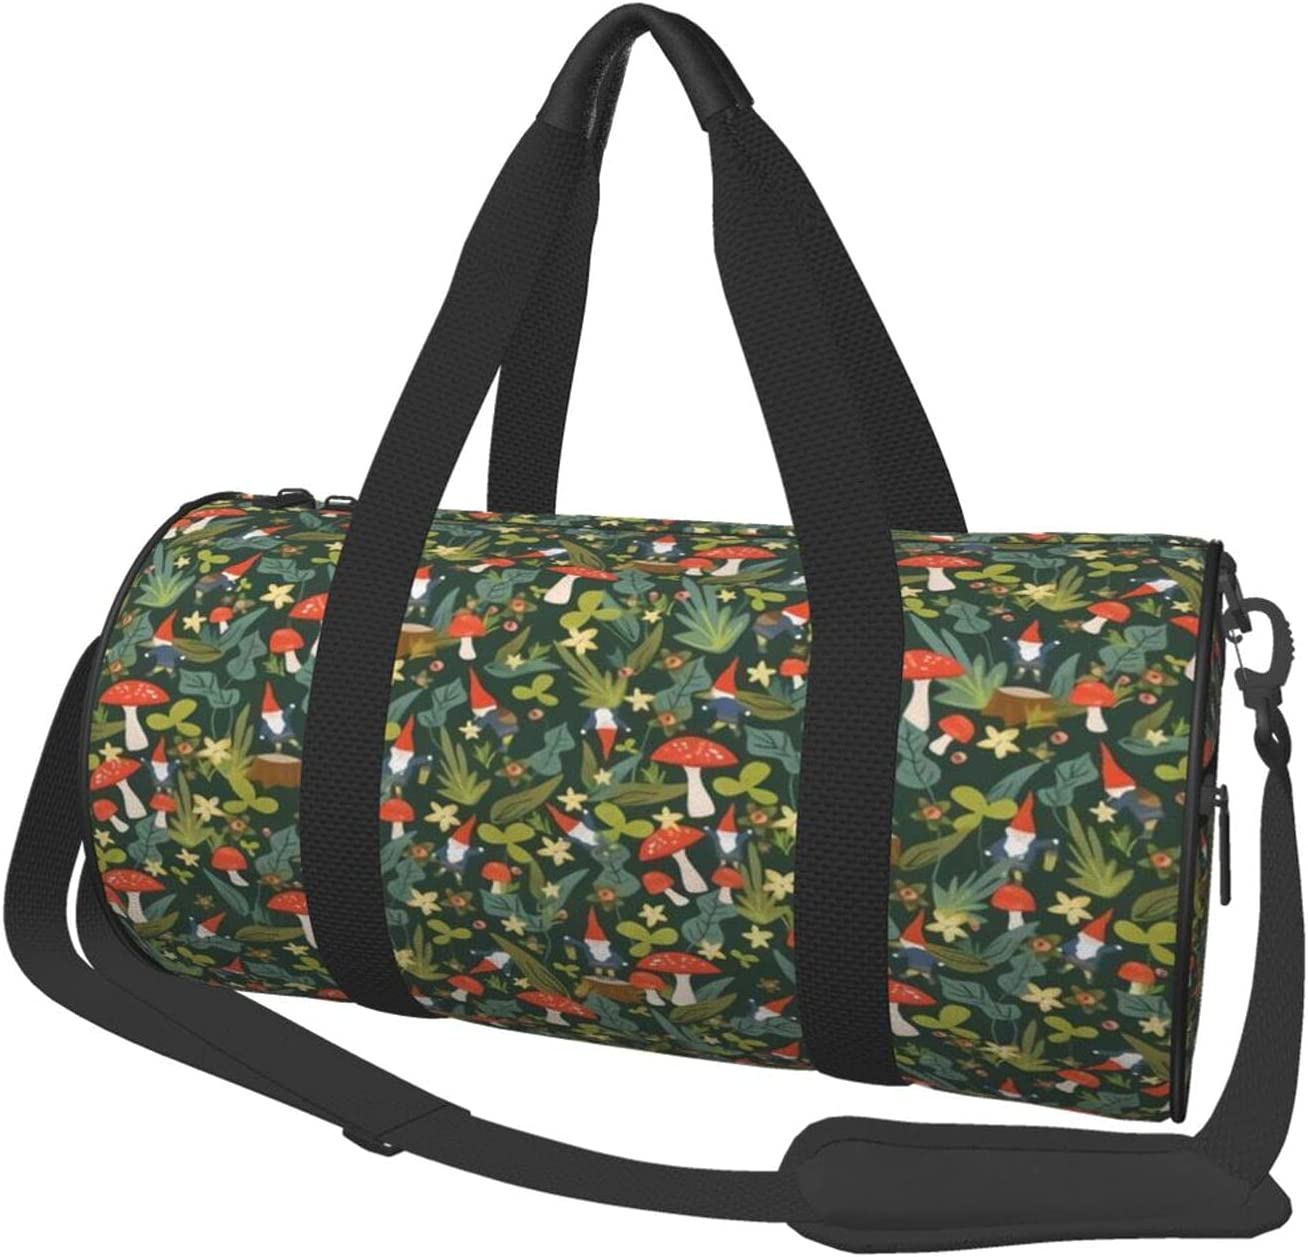 Woodland OFFer Gnomes Duffle Bag Gym Sports Very popular fitness Men Women Tote